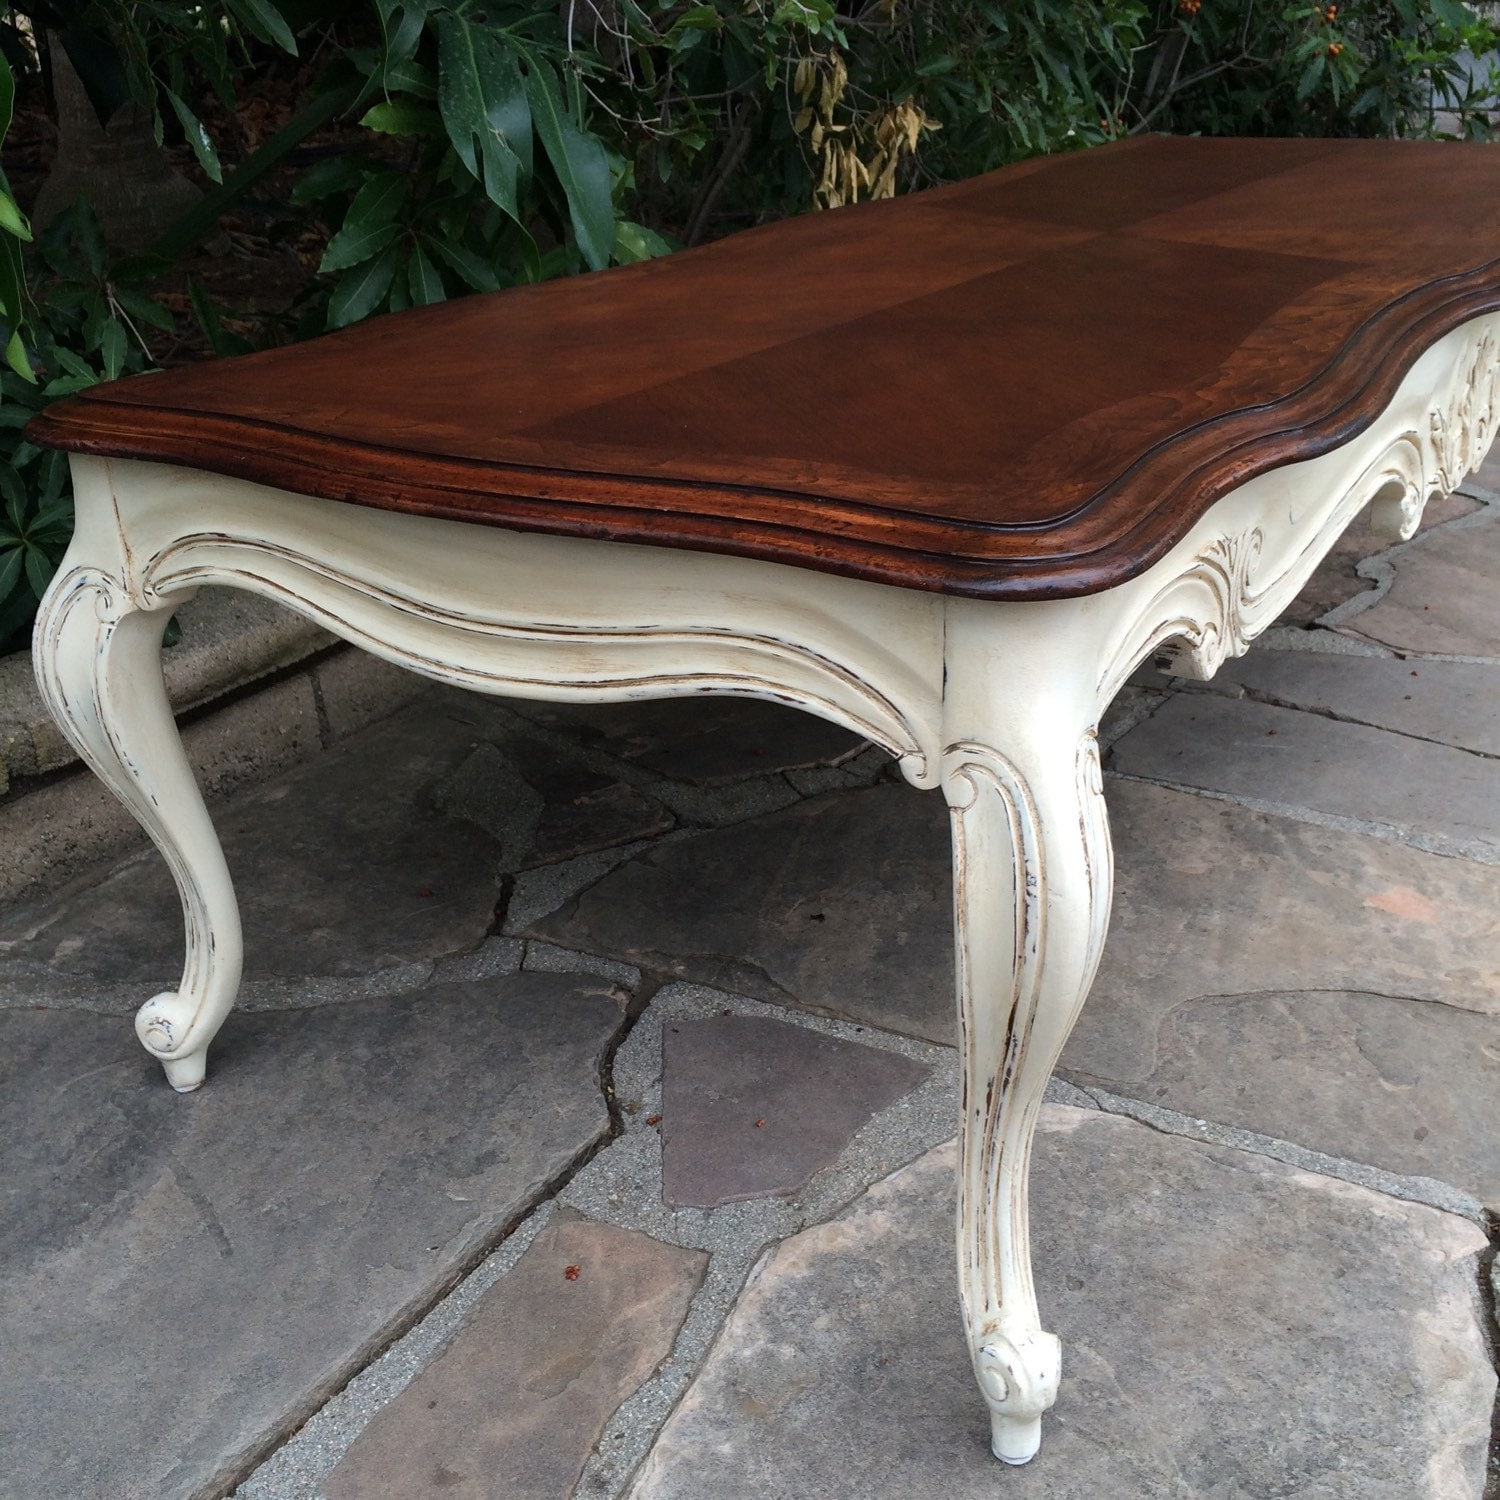 French Provincial Solid Wood Long Coffee Table By Ladderbackgirl